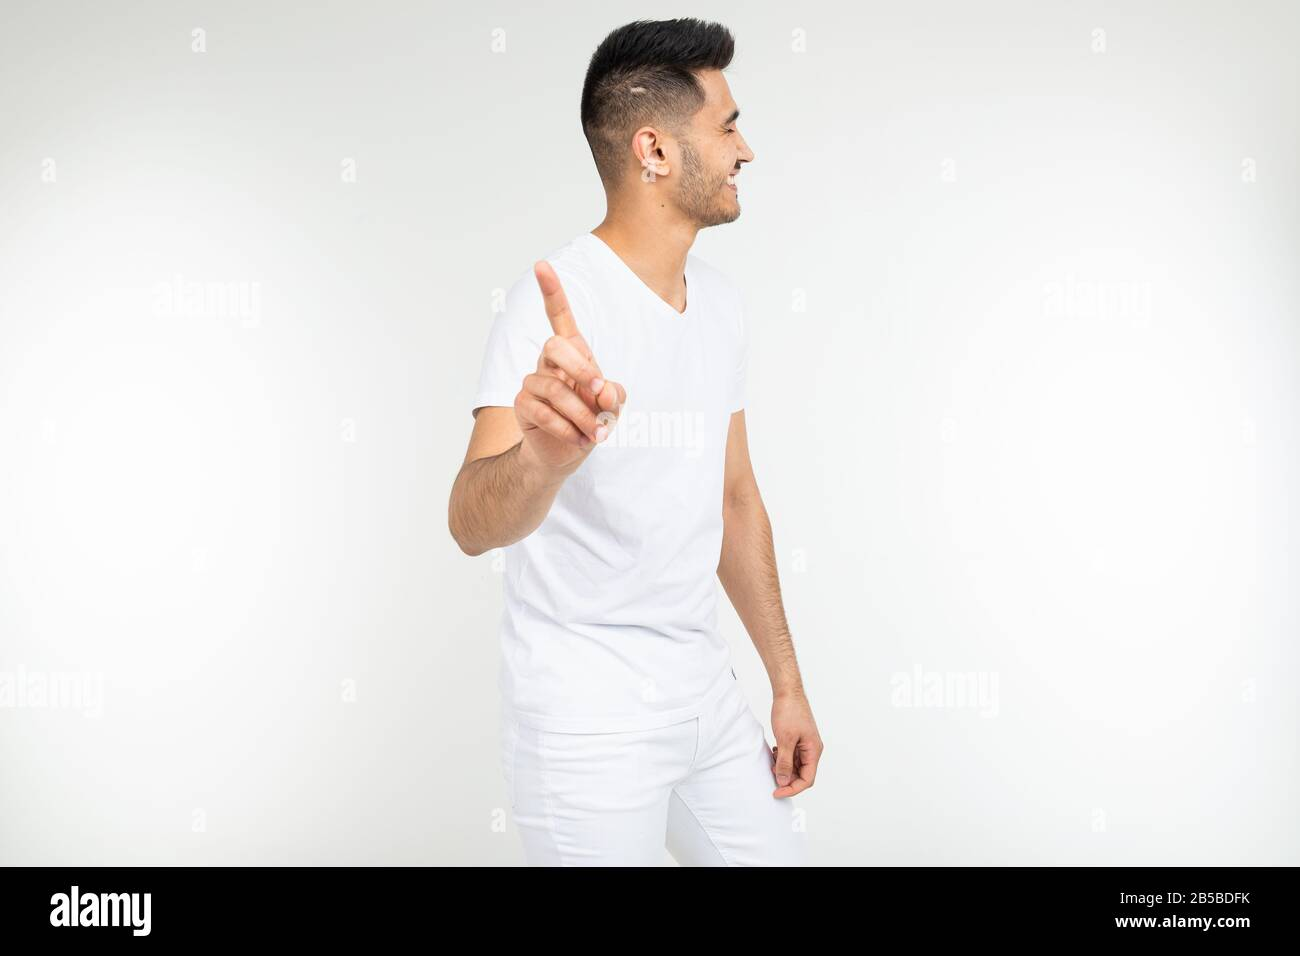 smiling man points his finger at the viewer and warns against a white studio background Stock Photo